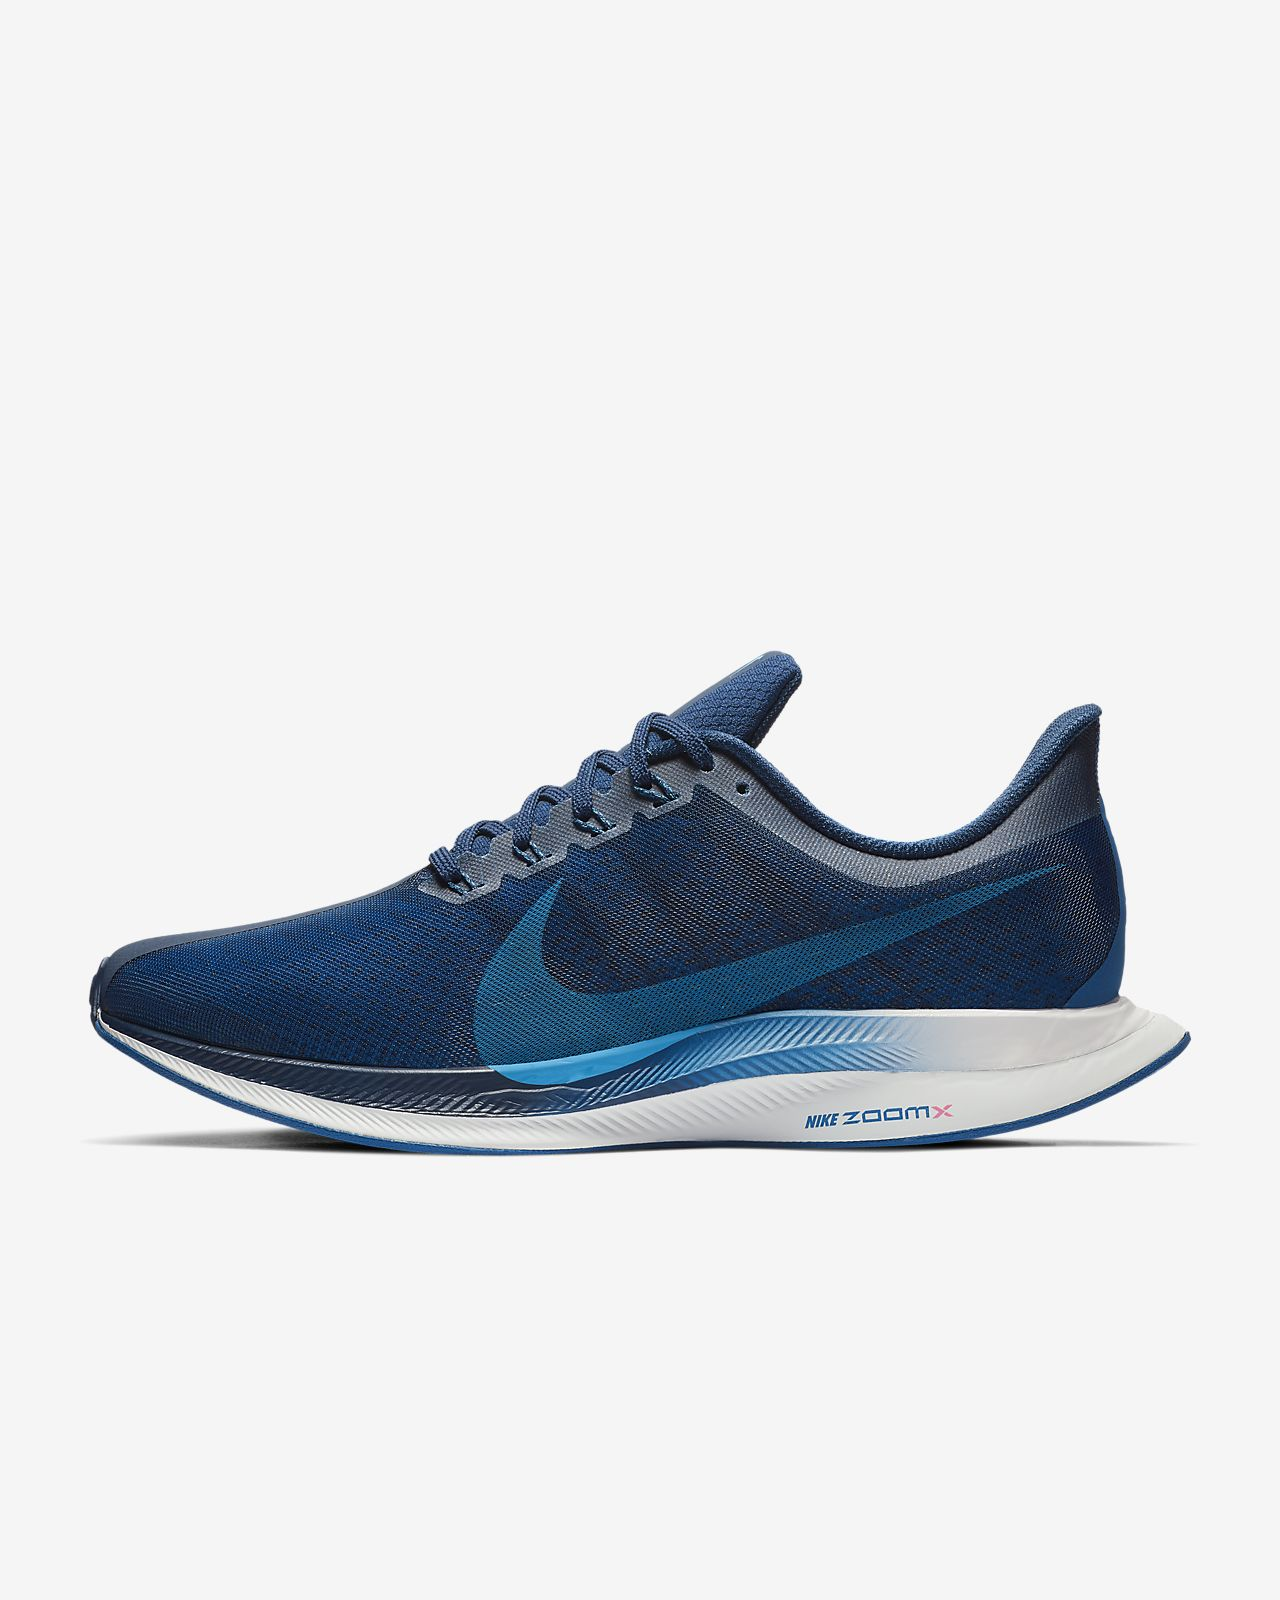 dfb3acd9c73a Nike Zoom Pegasus Turbo Men s Running Shoe. Nike.com MY